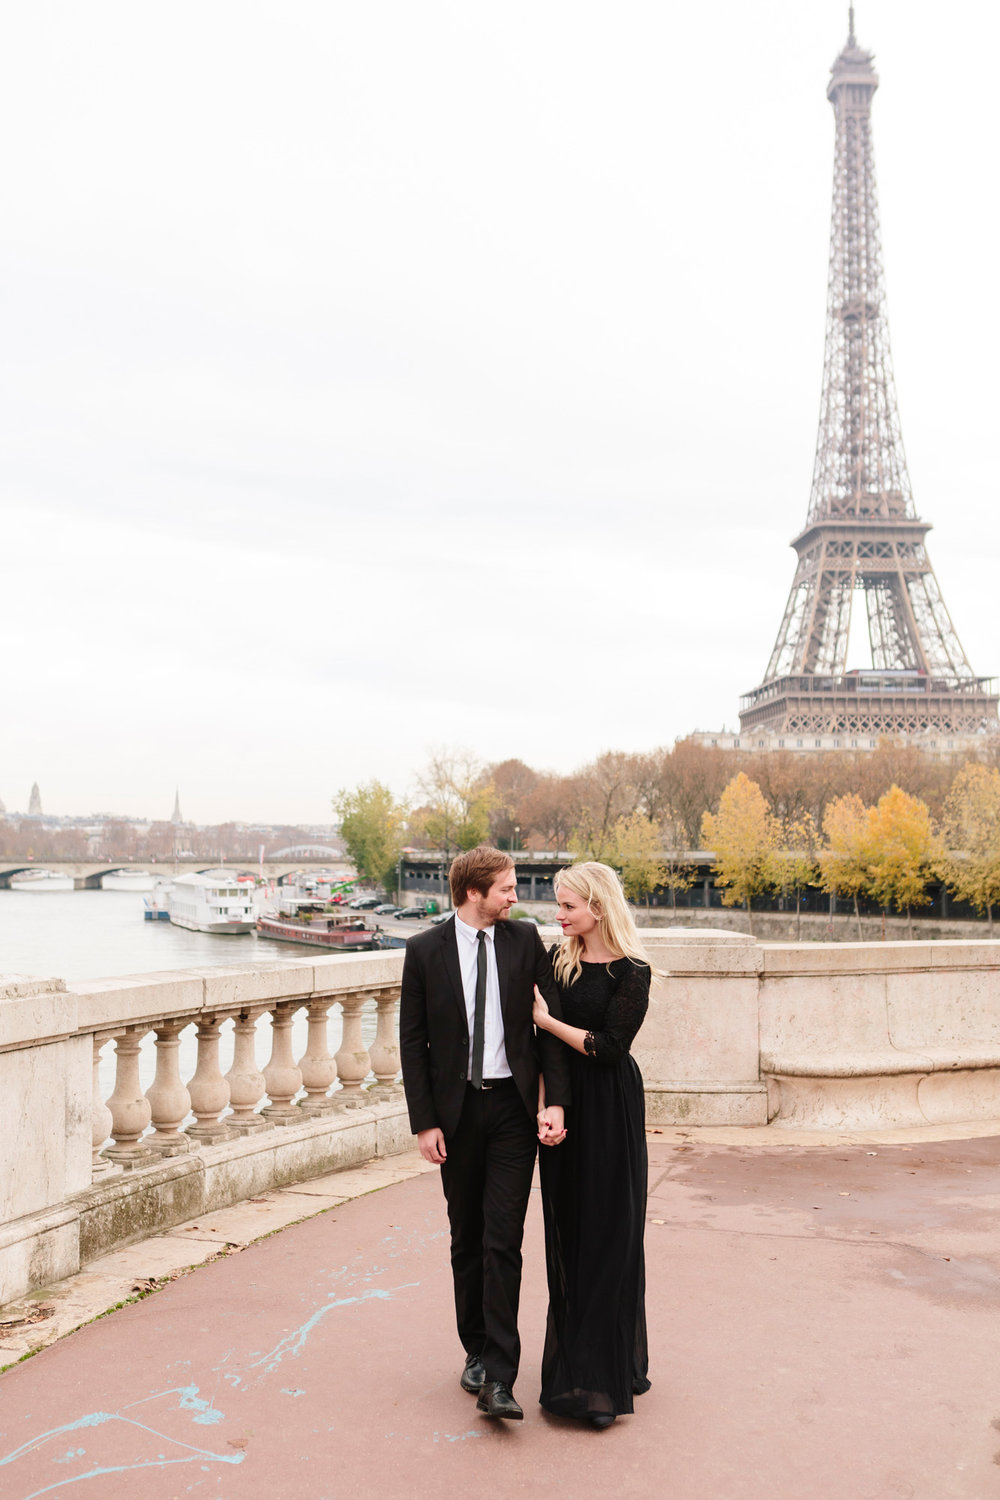 Photographer in Paris Federico Guendel captured couple engagement portrait with the view of the Eiffel Tower at Bir Hakeim Bridge